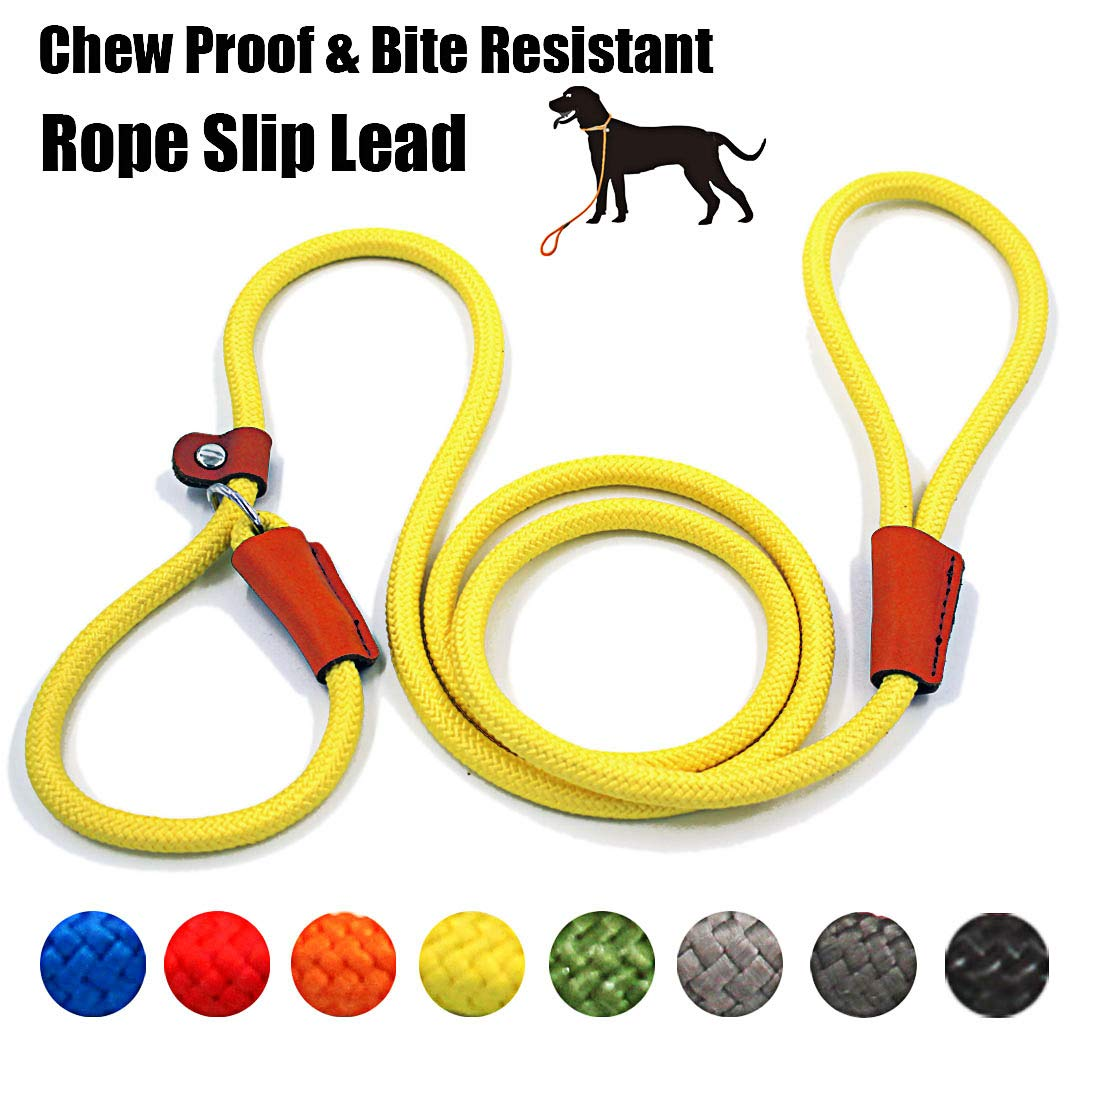 lynxking Braided Rope Dog Leash Strong Heavy Duty Bite Resistant Dog Rope Slip Leads UHMWPE Chew Resistant Training Lead Leashes Medium Large Dogs (3/8'' x5', Yellow)